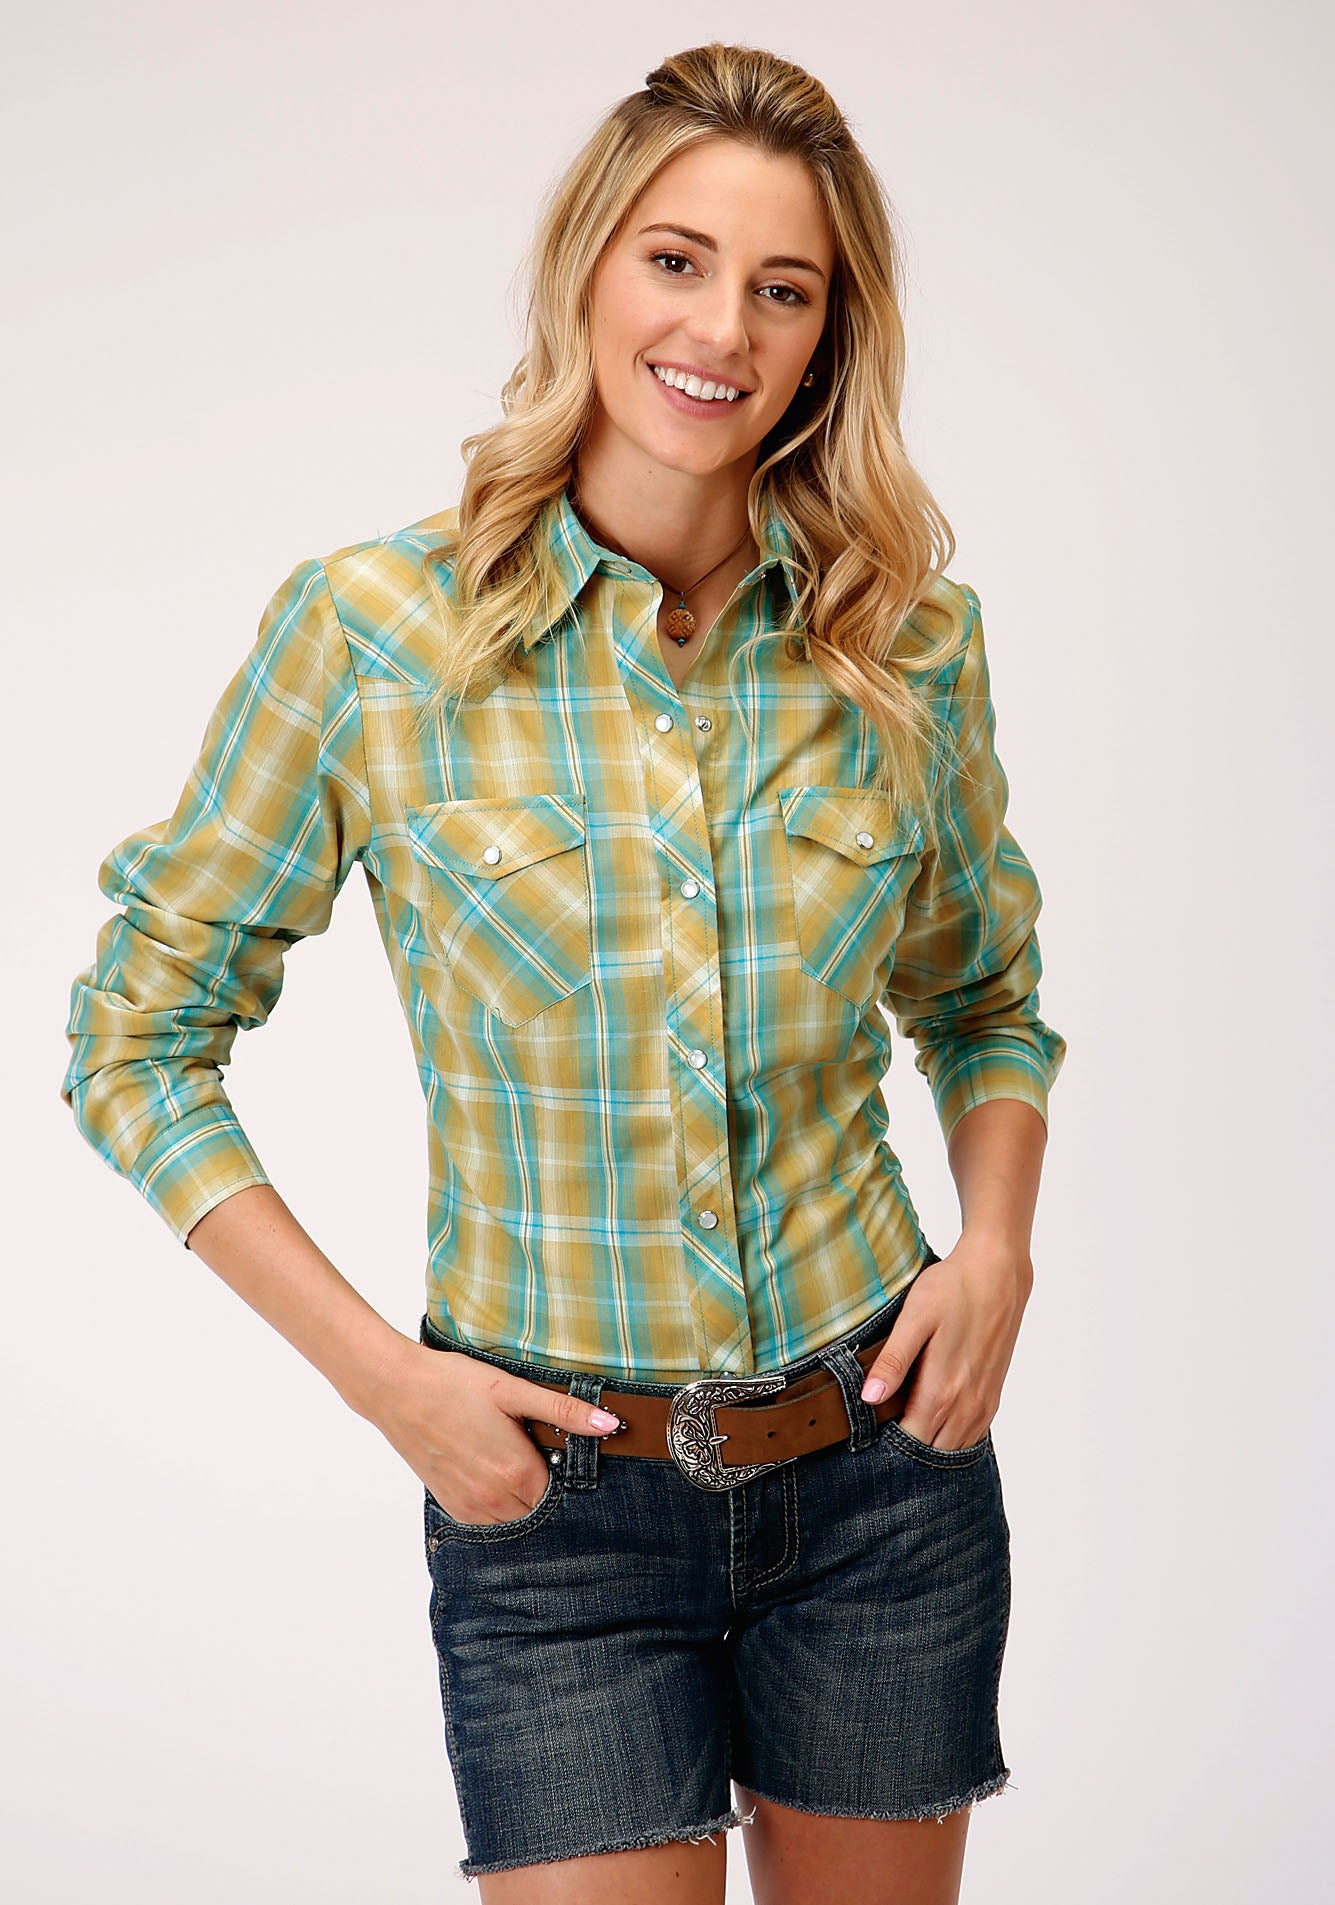 ROPER WOMENS GREEN 00044 CELERY & TURQUOISE PLAID KARMAN CLASSICS- 55/45 PLAIDS LONG SLEEVE